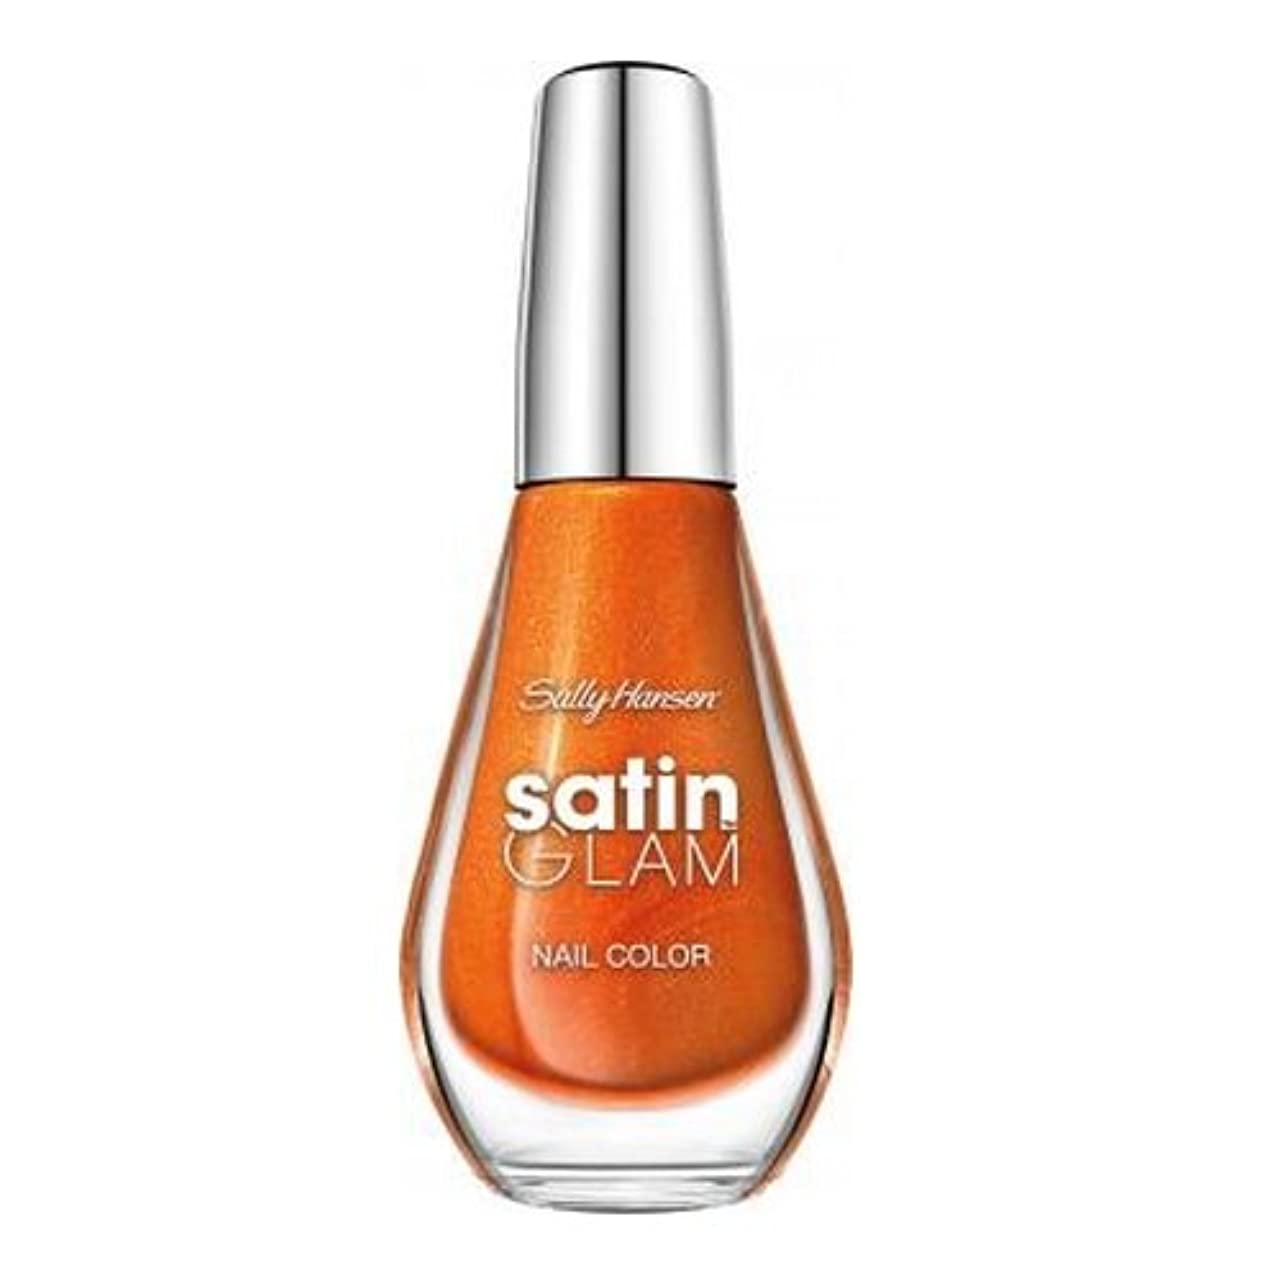 素晴らしき暴露するパース(3 Pack) SALLY HANSEN Satin Glam Shimmery Matte Finish Nail Color - Sun Sheen (並行輸入品)